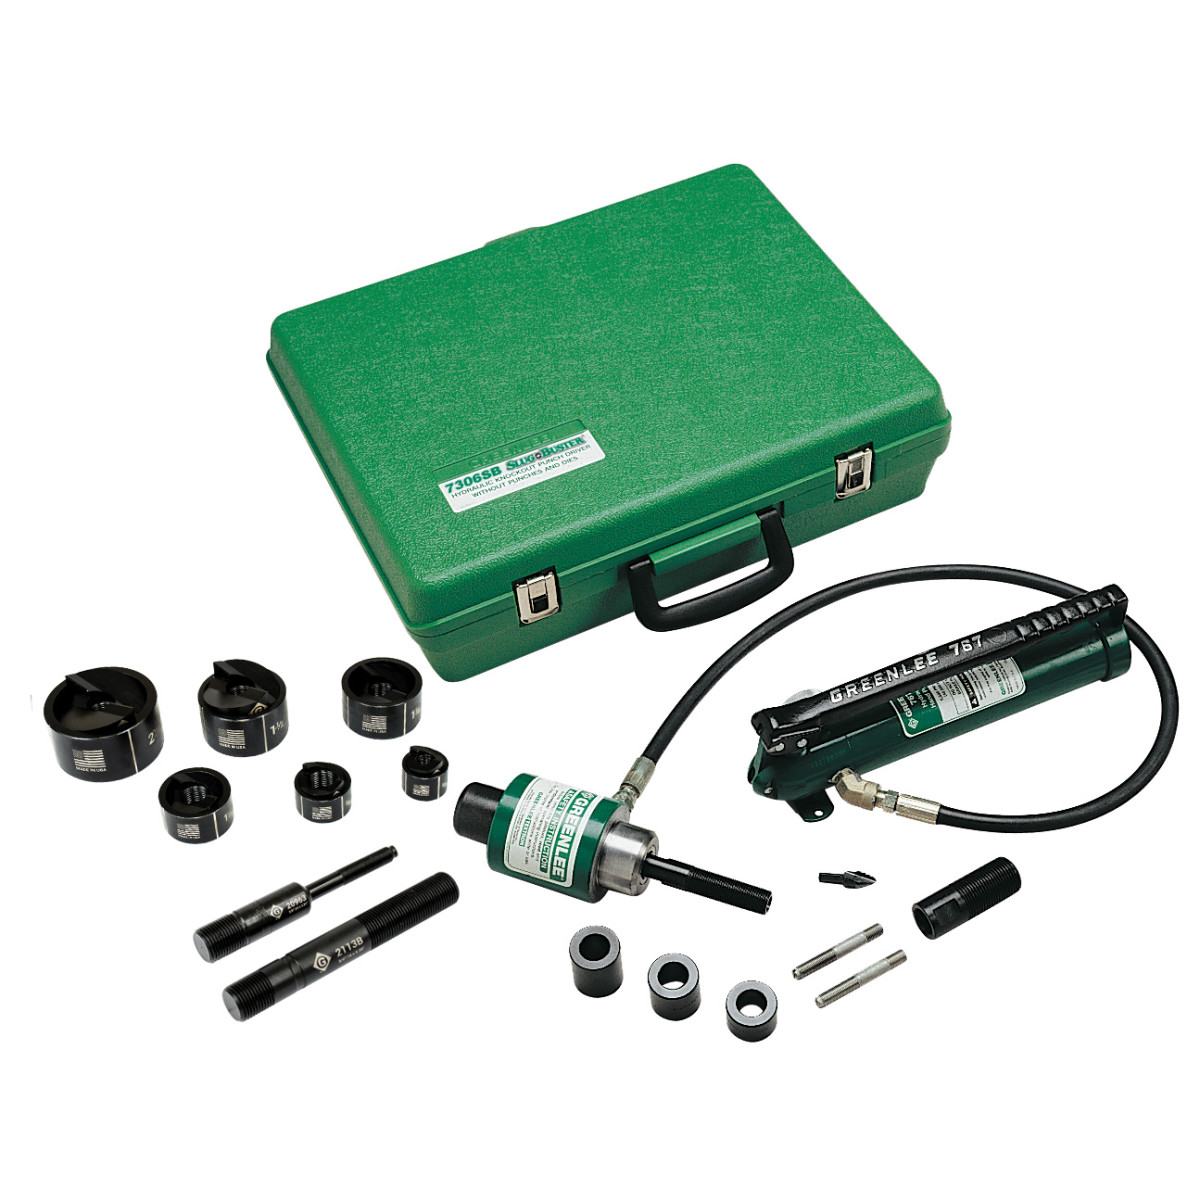 GRT7306SB DRIVER, HAND PUMP, SLUG-BUSTER PUNCHES, DIES AND DRAW STUDSFOR 1/2 THROUGH 2 CONDUIT, ADAPTER, SPACERS, KWIK STEPPER STEP BIT AND PLASTIC CASE, GREENLEE